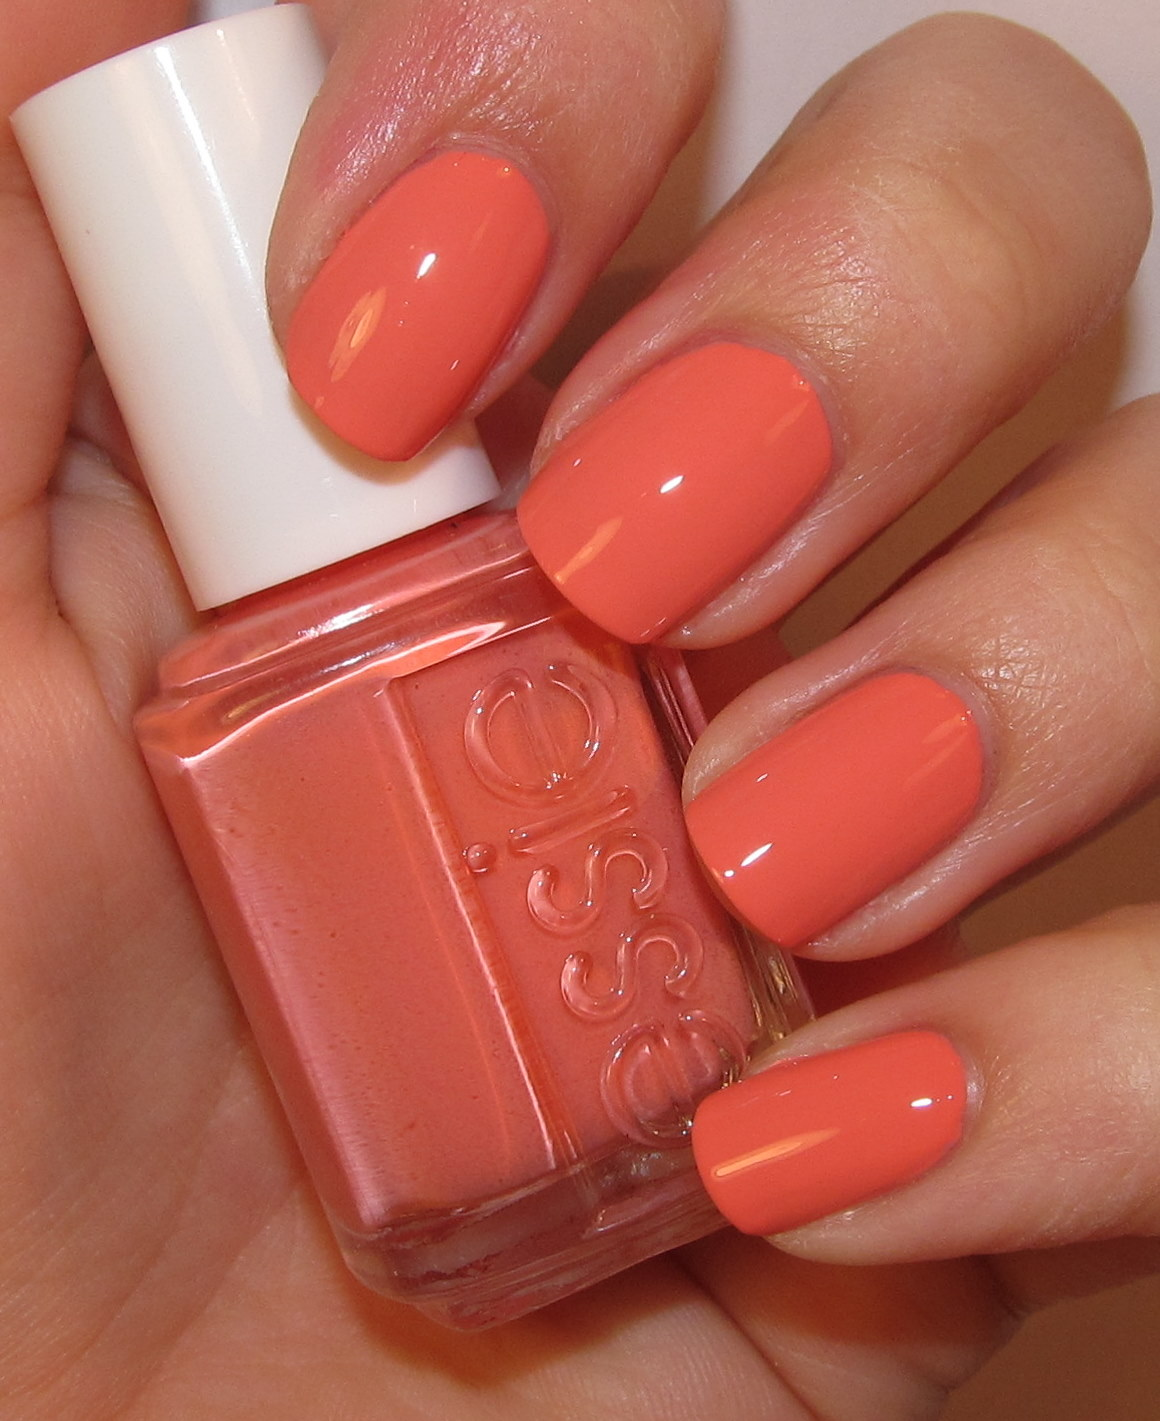 Style By Bravura\'s Favorite Oranges trending for Spring 2013 nails!